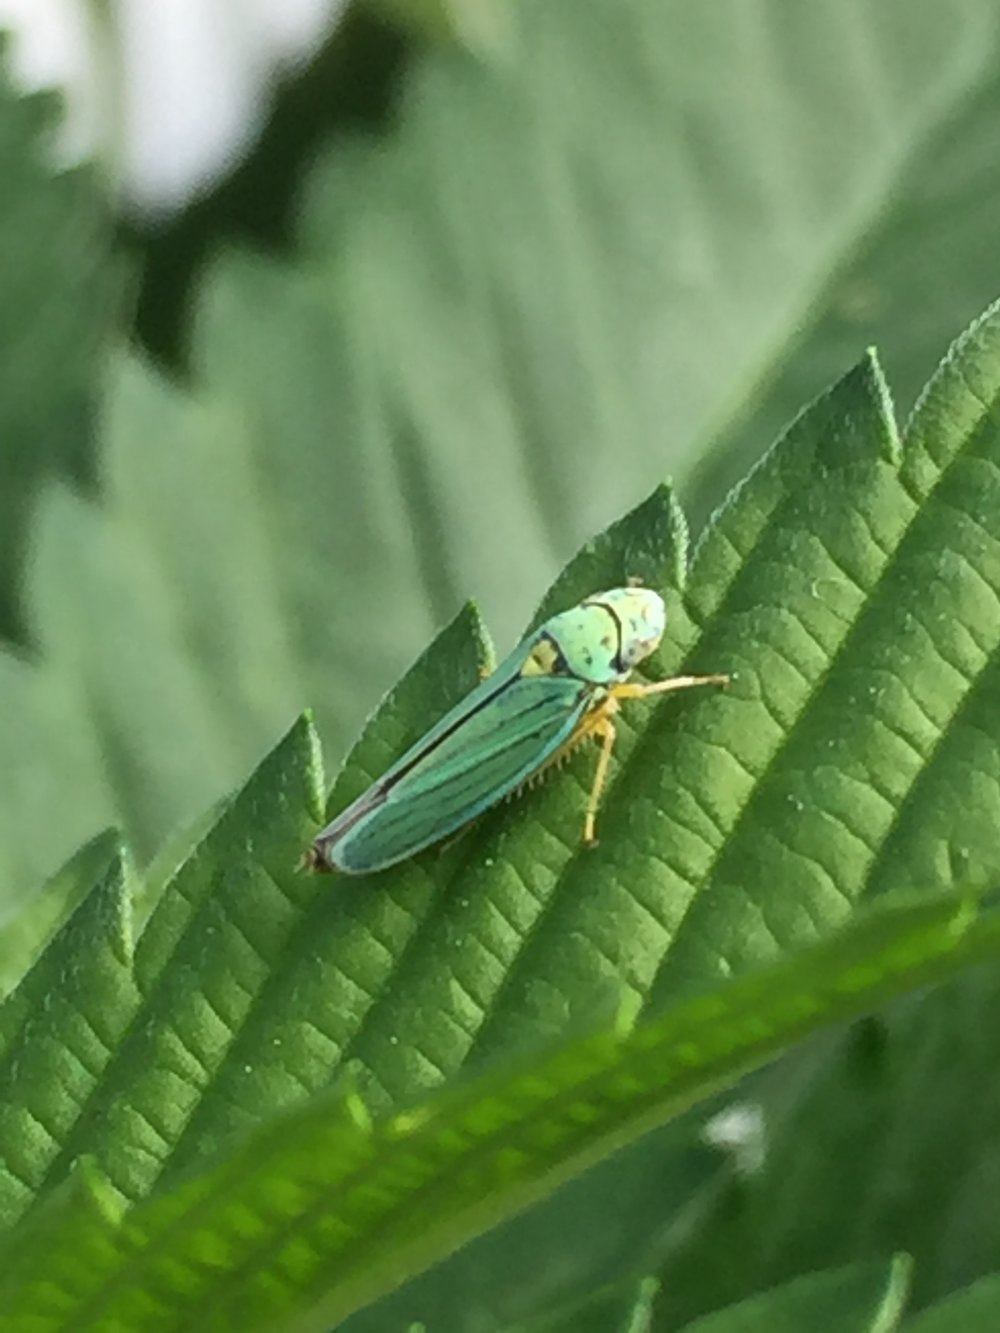 Leafhopper.jpeg